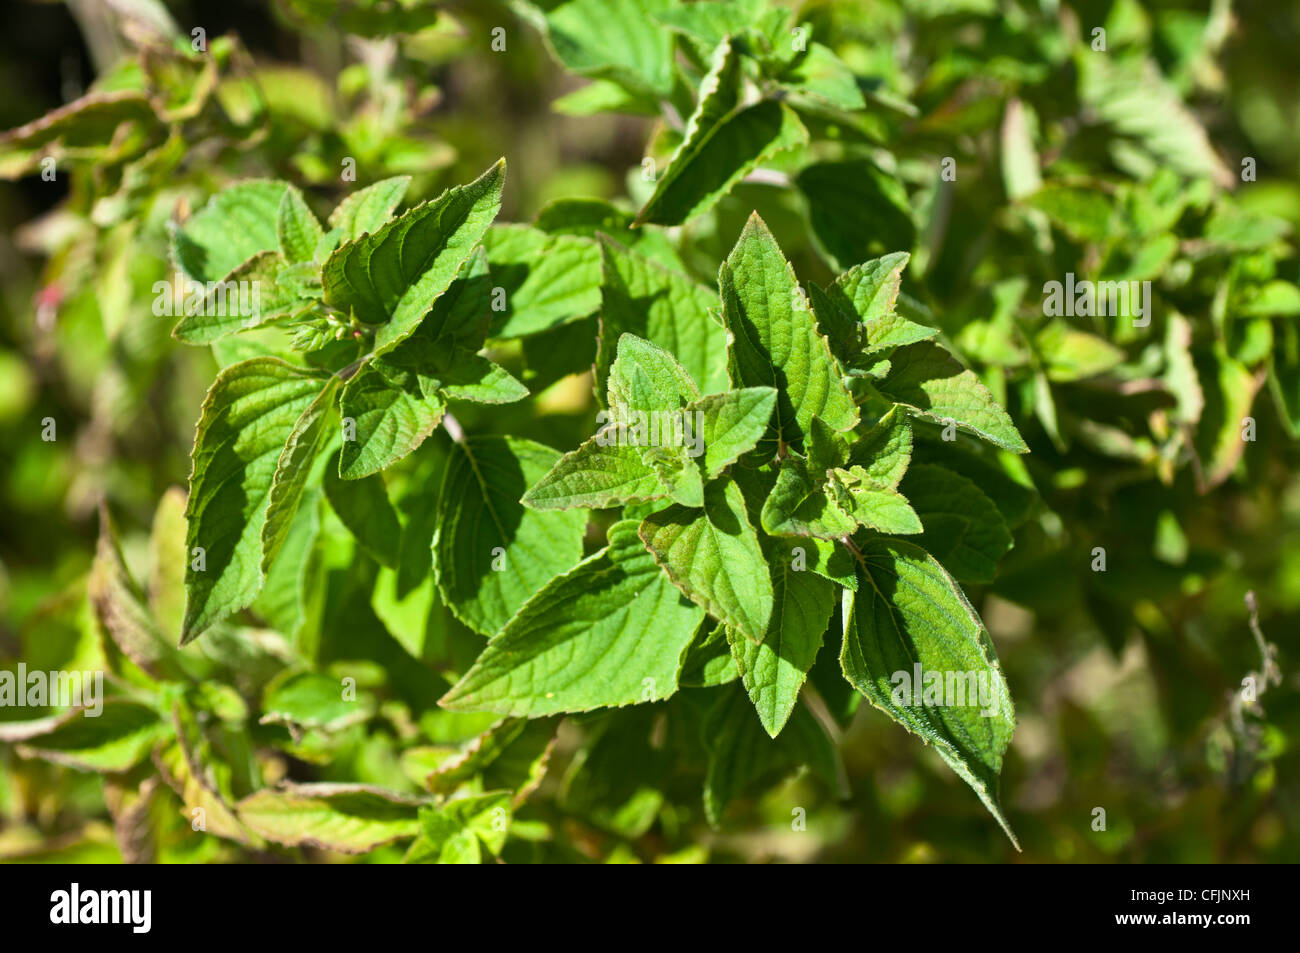 Honeydew sage, Salvia Honeydev - Stock Image